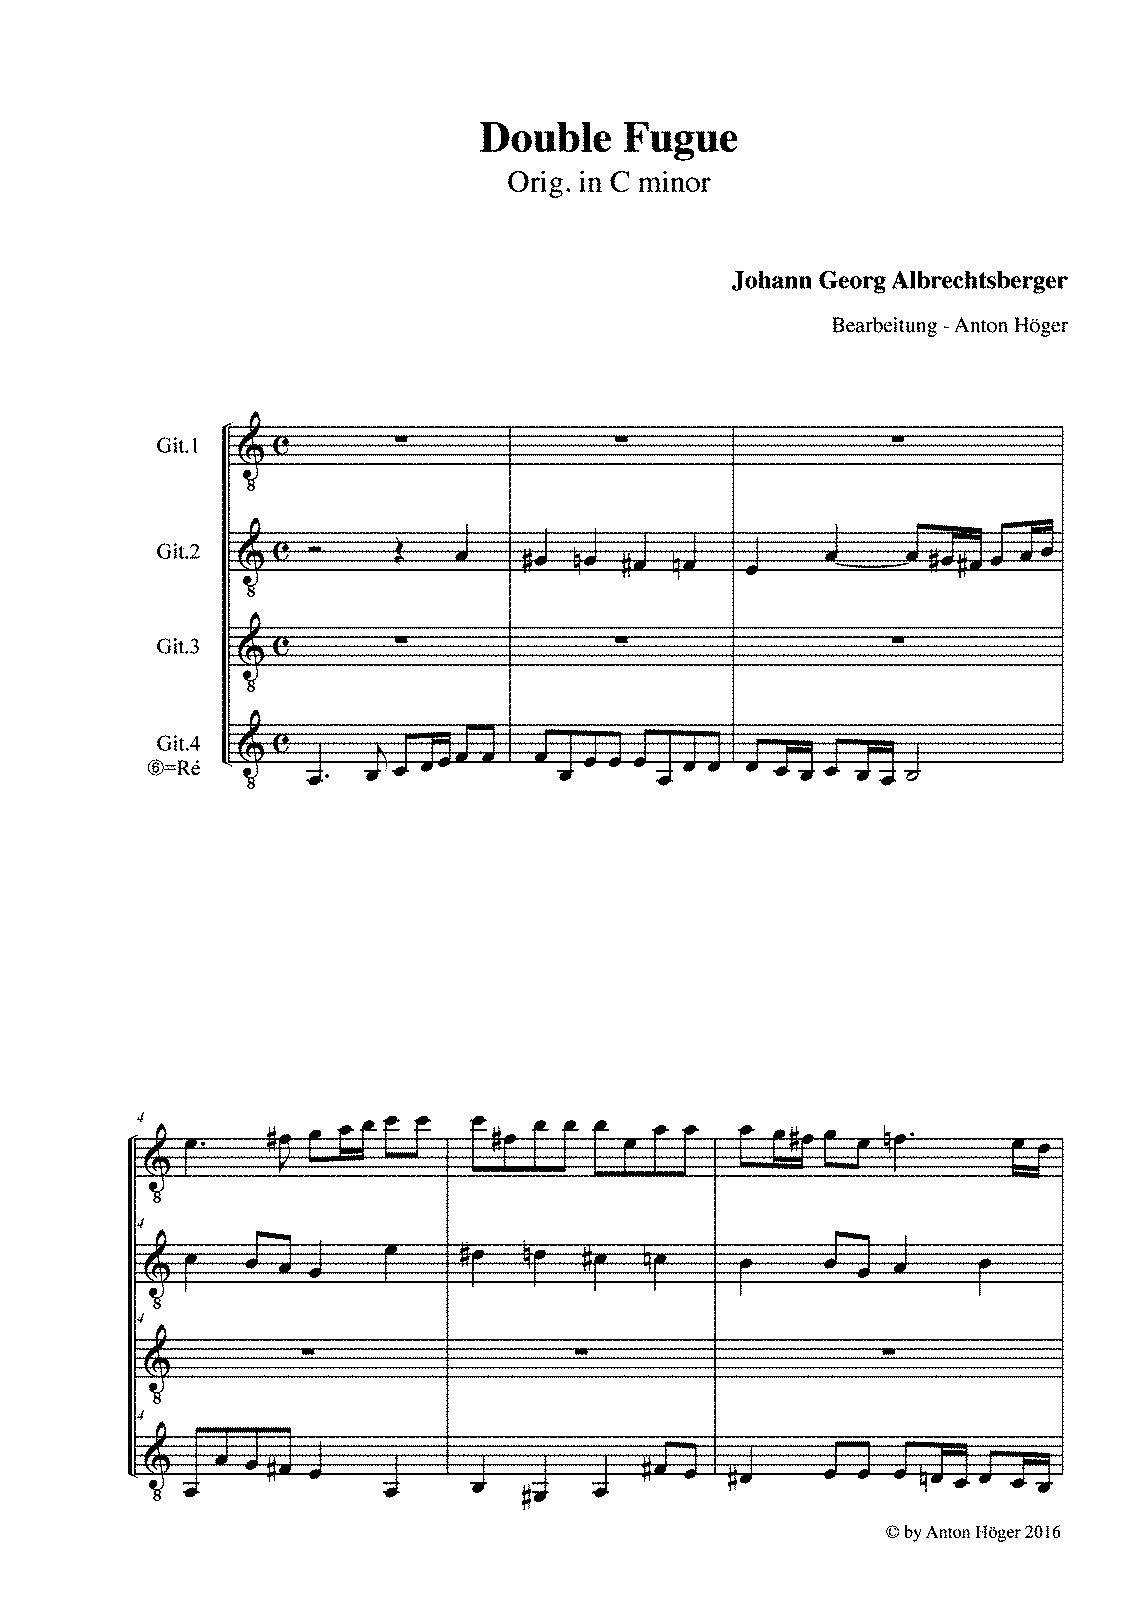 PMLP246290-Albrechtsberger, Johann Georg - Double Fugue in C minor.pdf